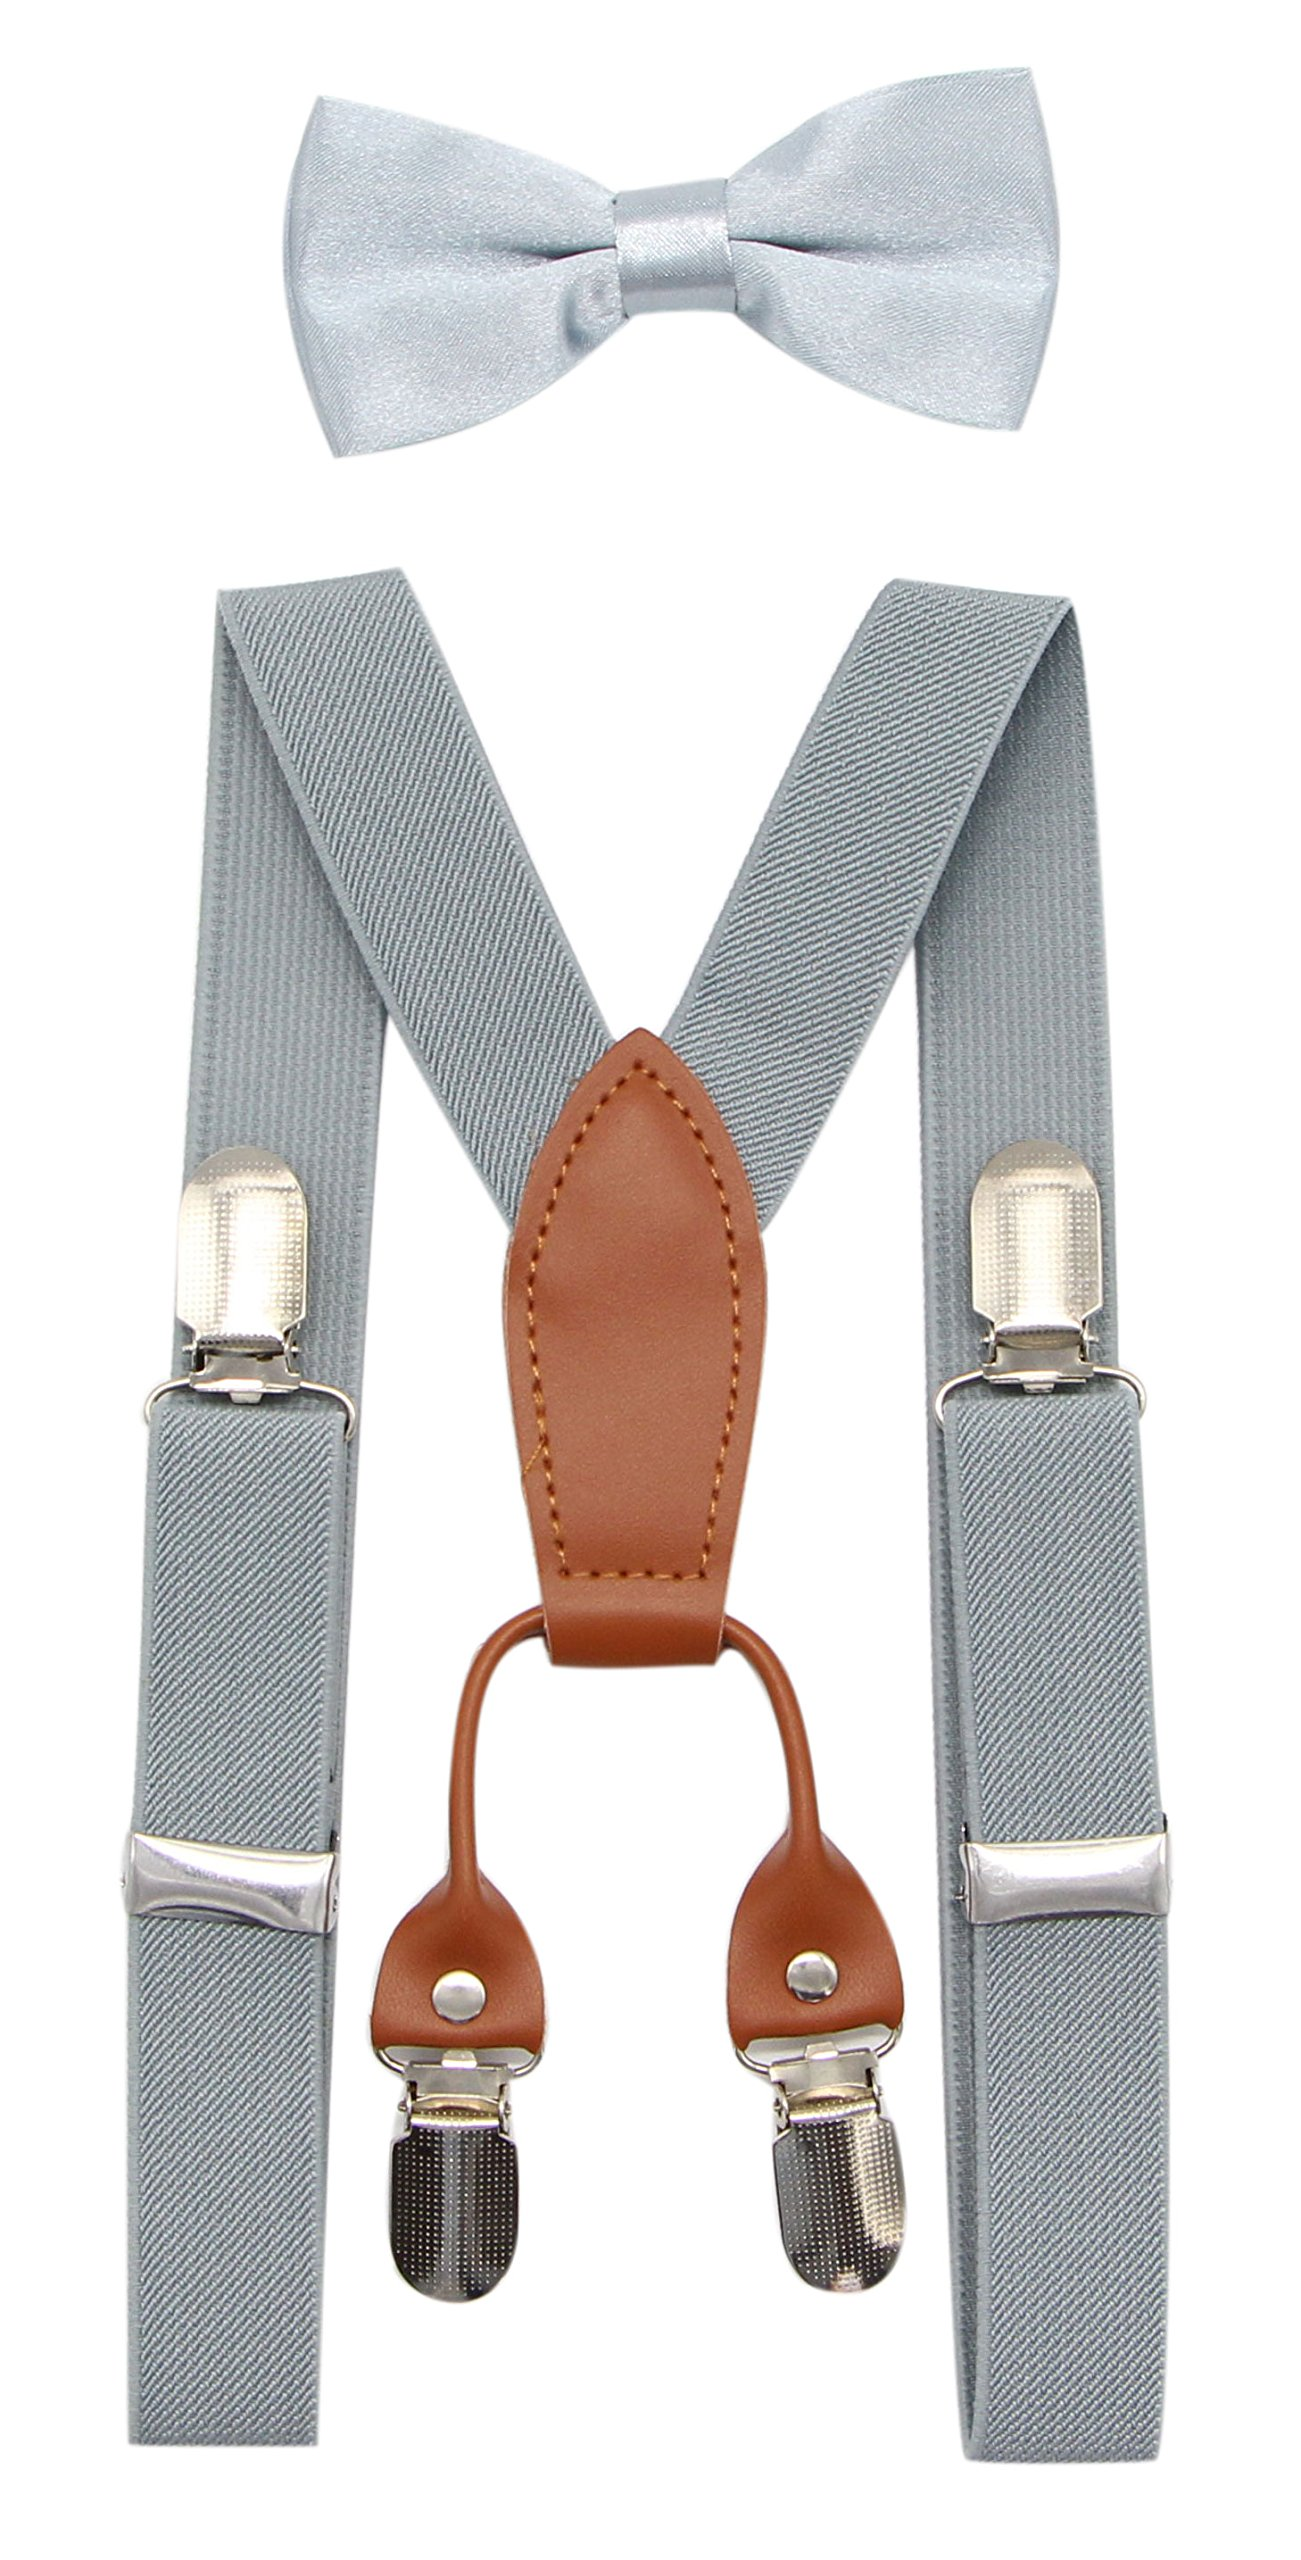 JAIFEI Toddler Kids 4 Clips Adjustable Suspenders and Matching Bow Tie Set (Light Gray)